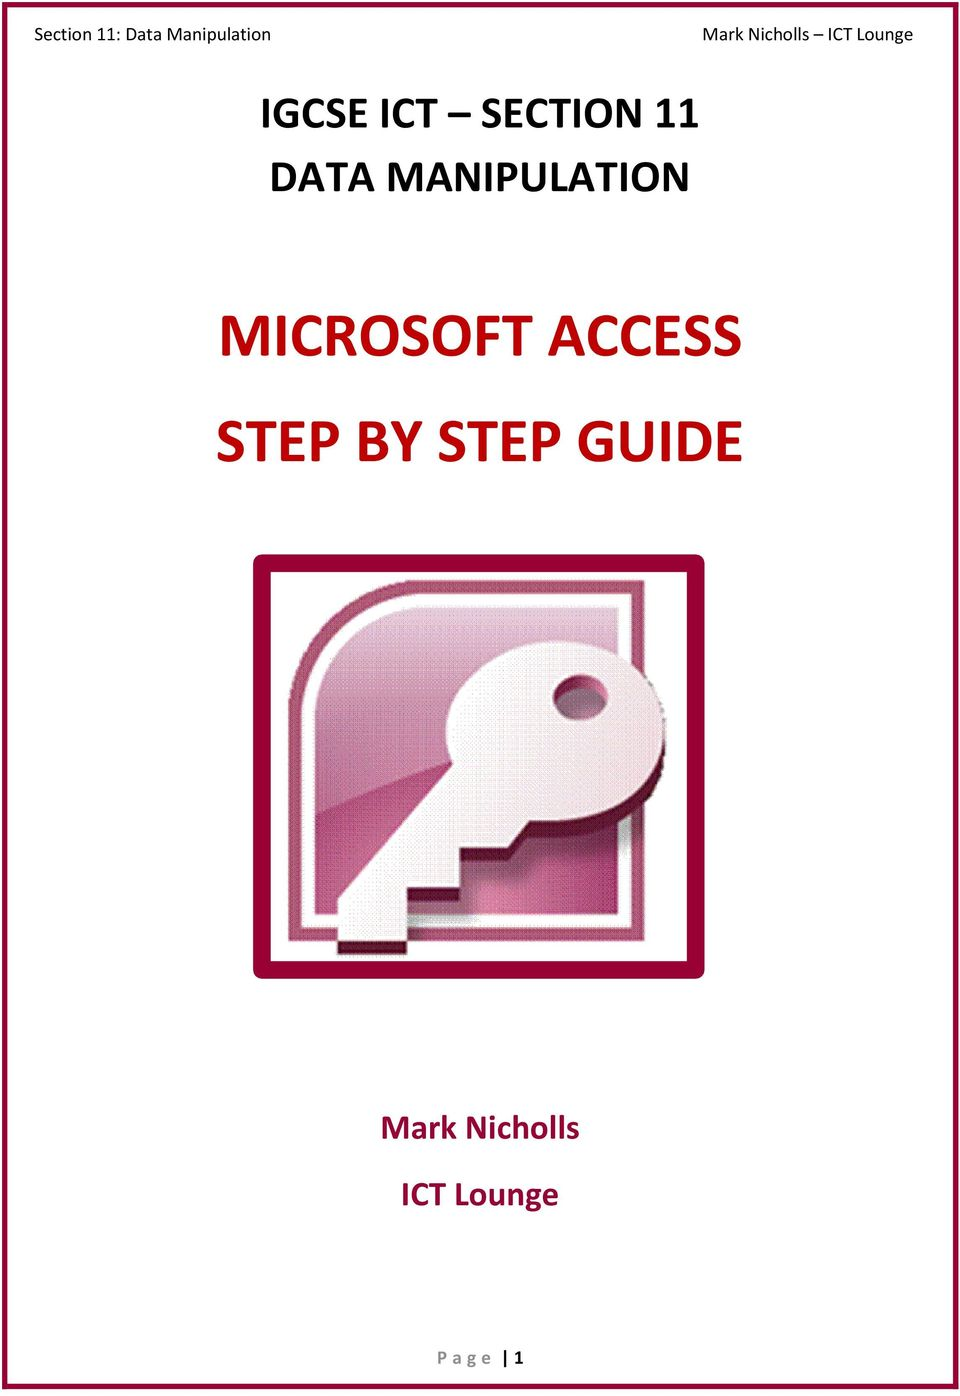 ACCESS STEP BY STEP GUIDE